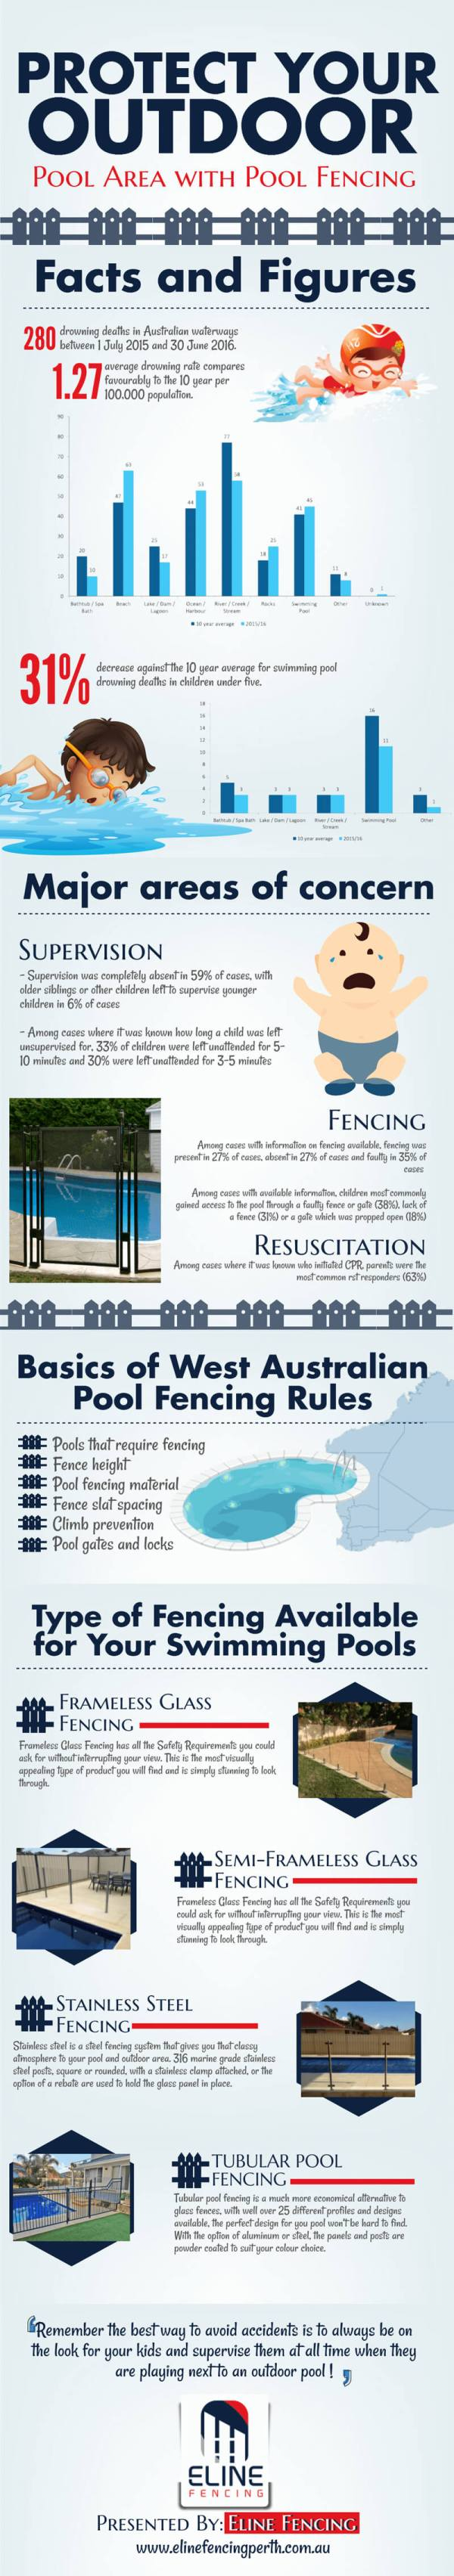 Protect-your-Outdoor-Area-with-Pool-Fencing-Infographic